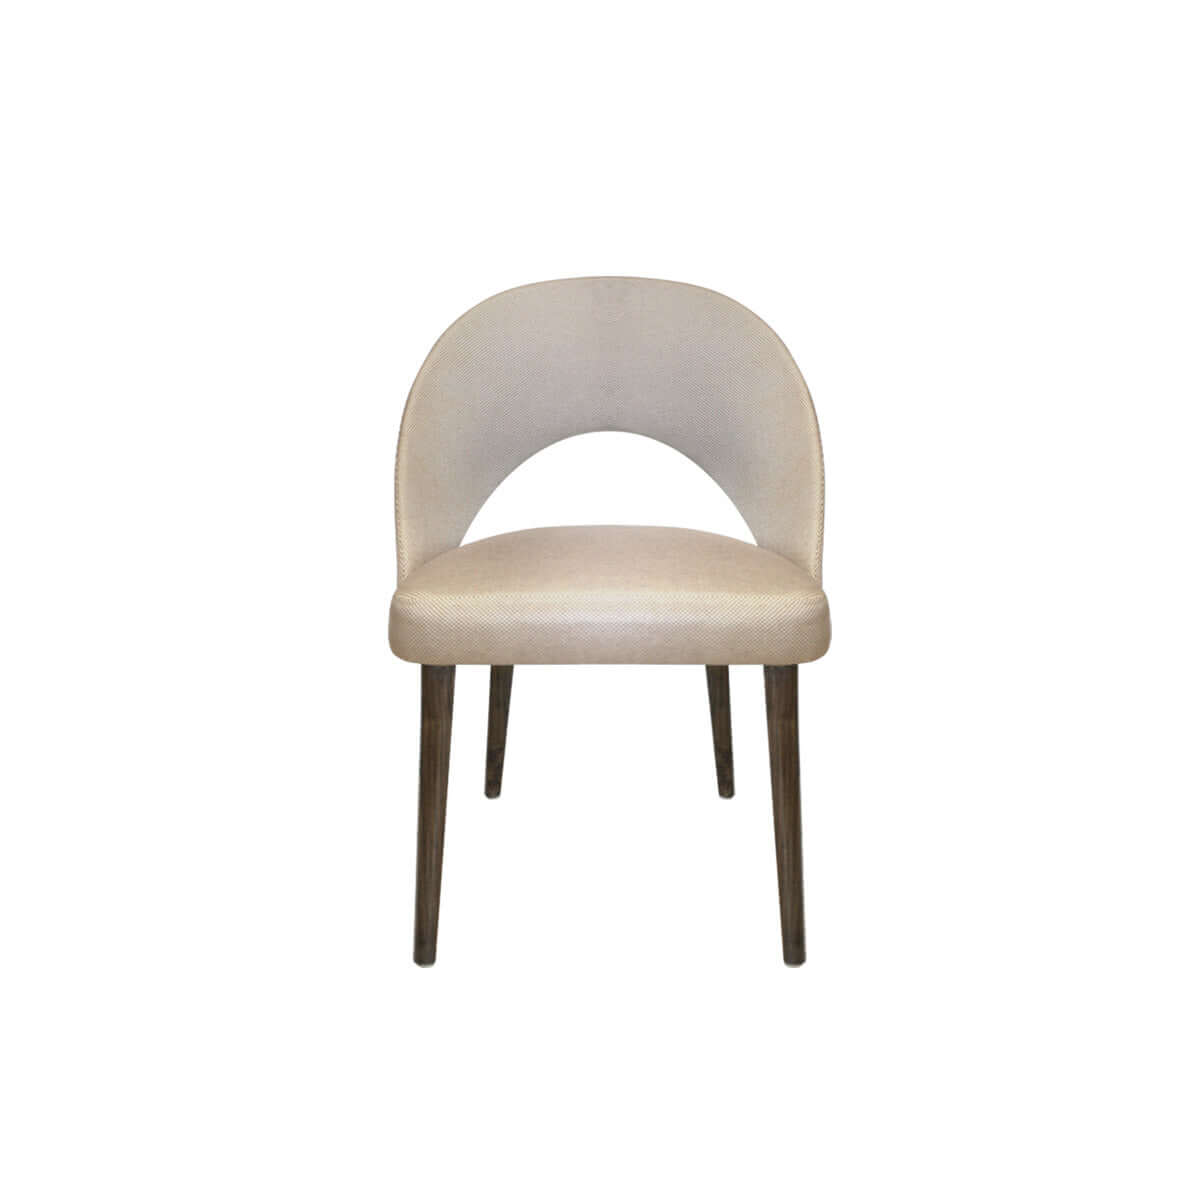 Orion Dining Chair